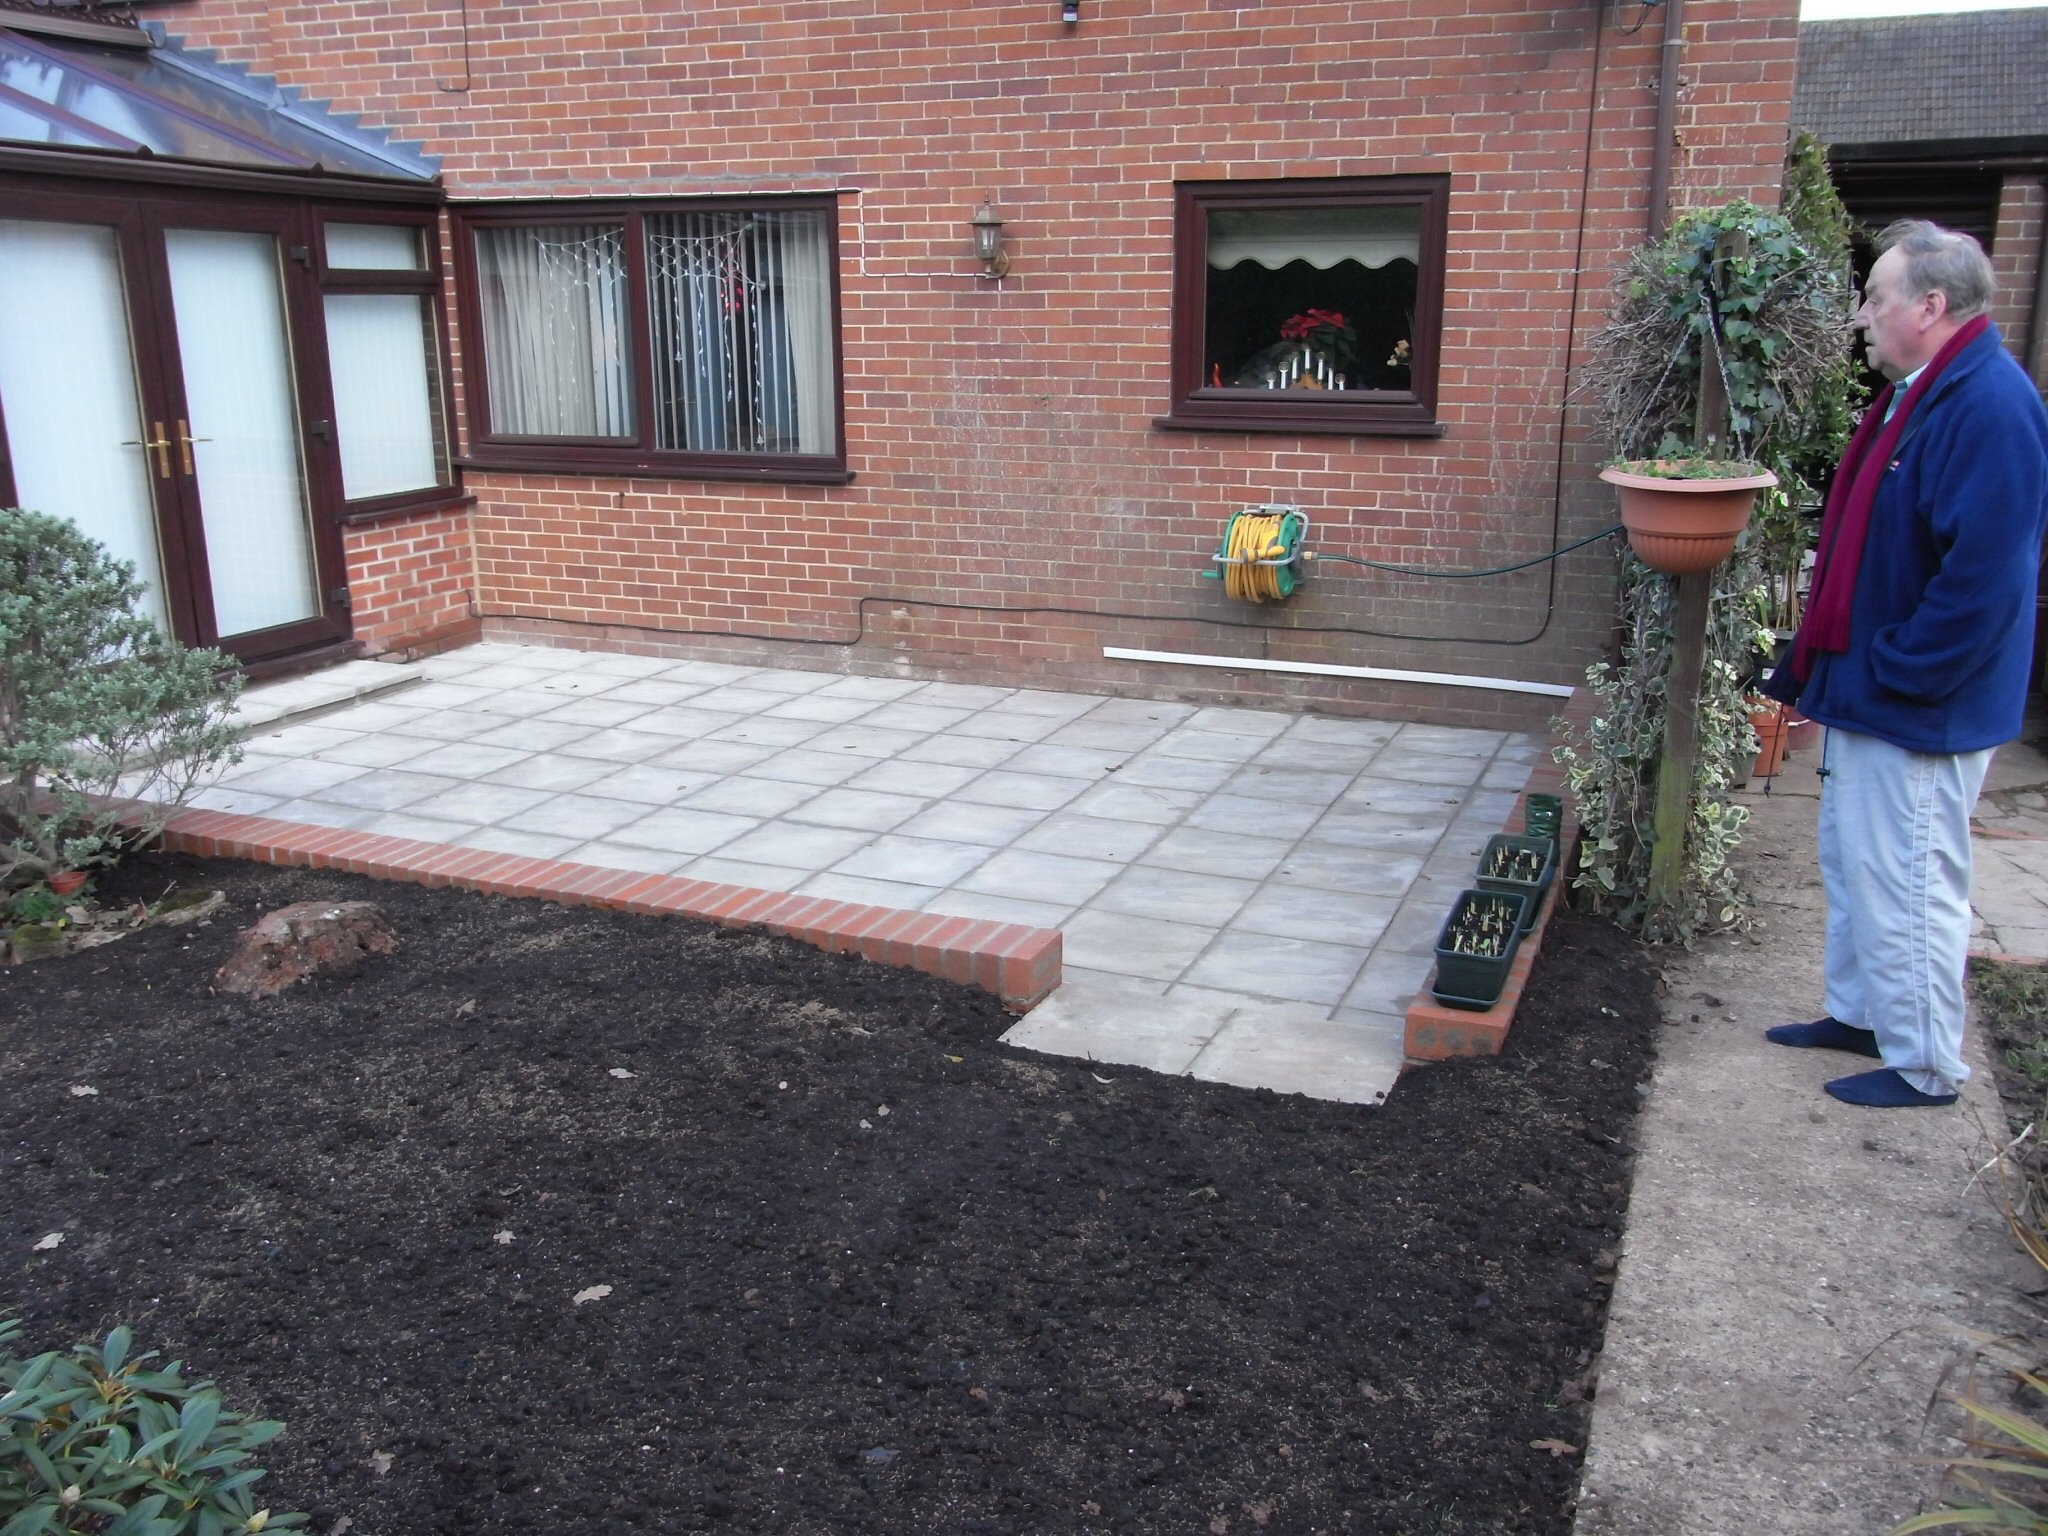 Superbe This Area Is Landscaped Using A Retaining Wall Around A Patio Area. We Have  Also